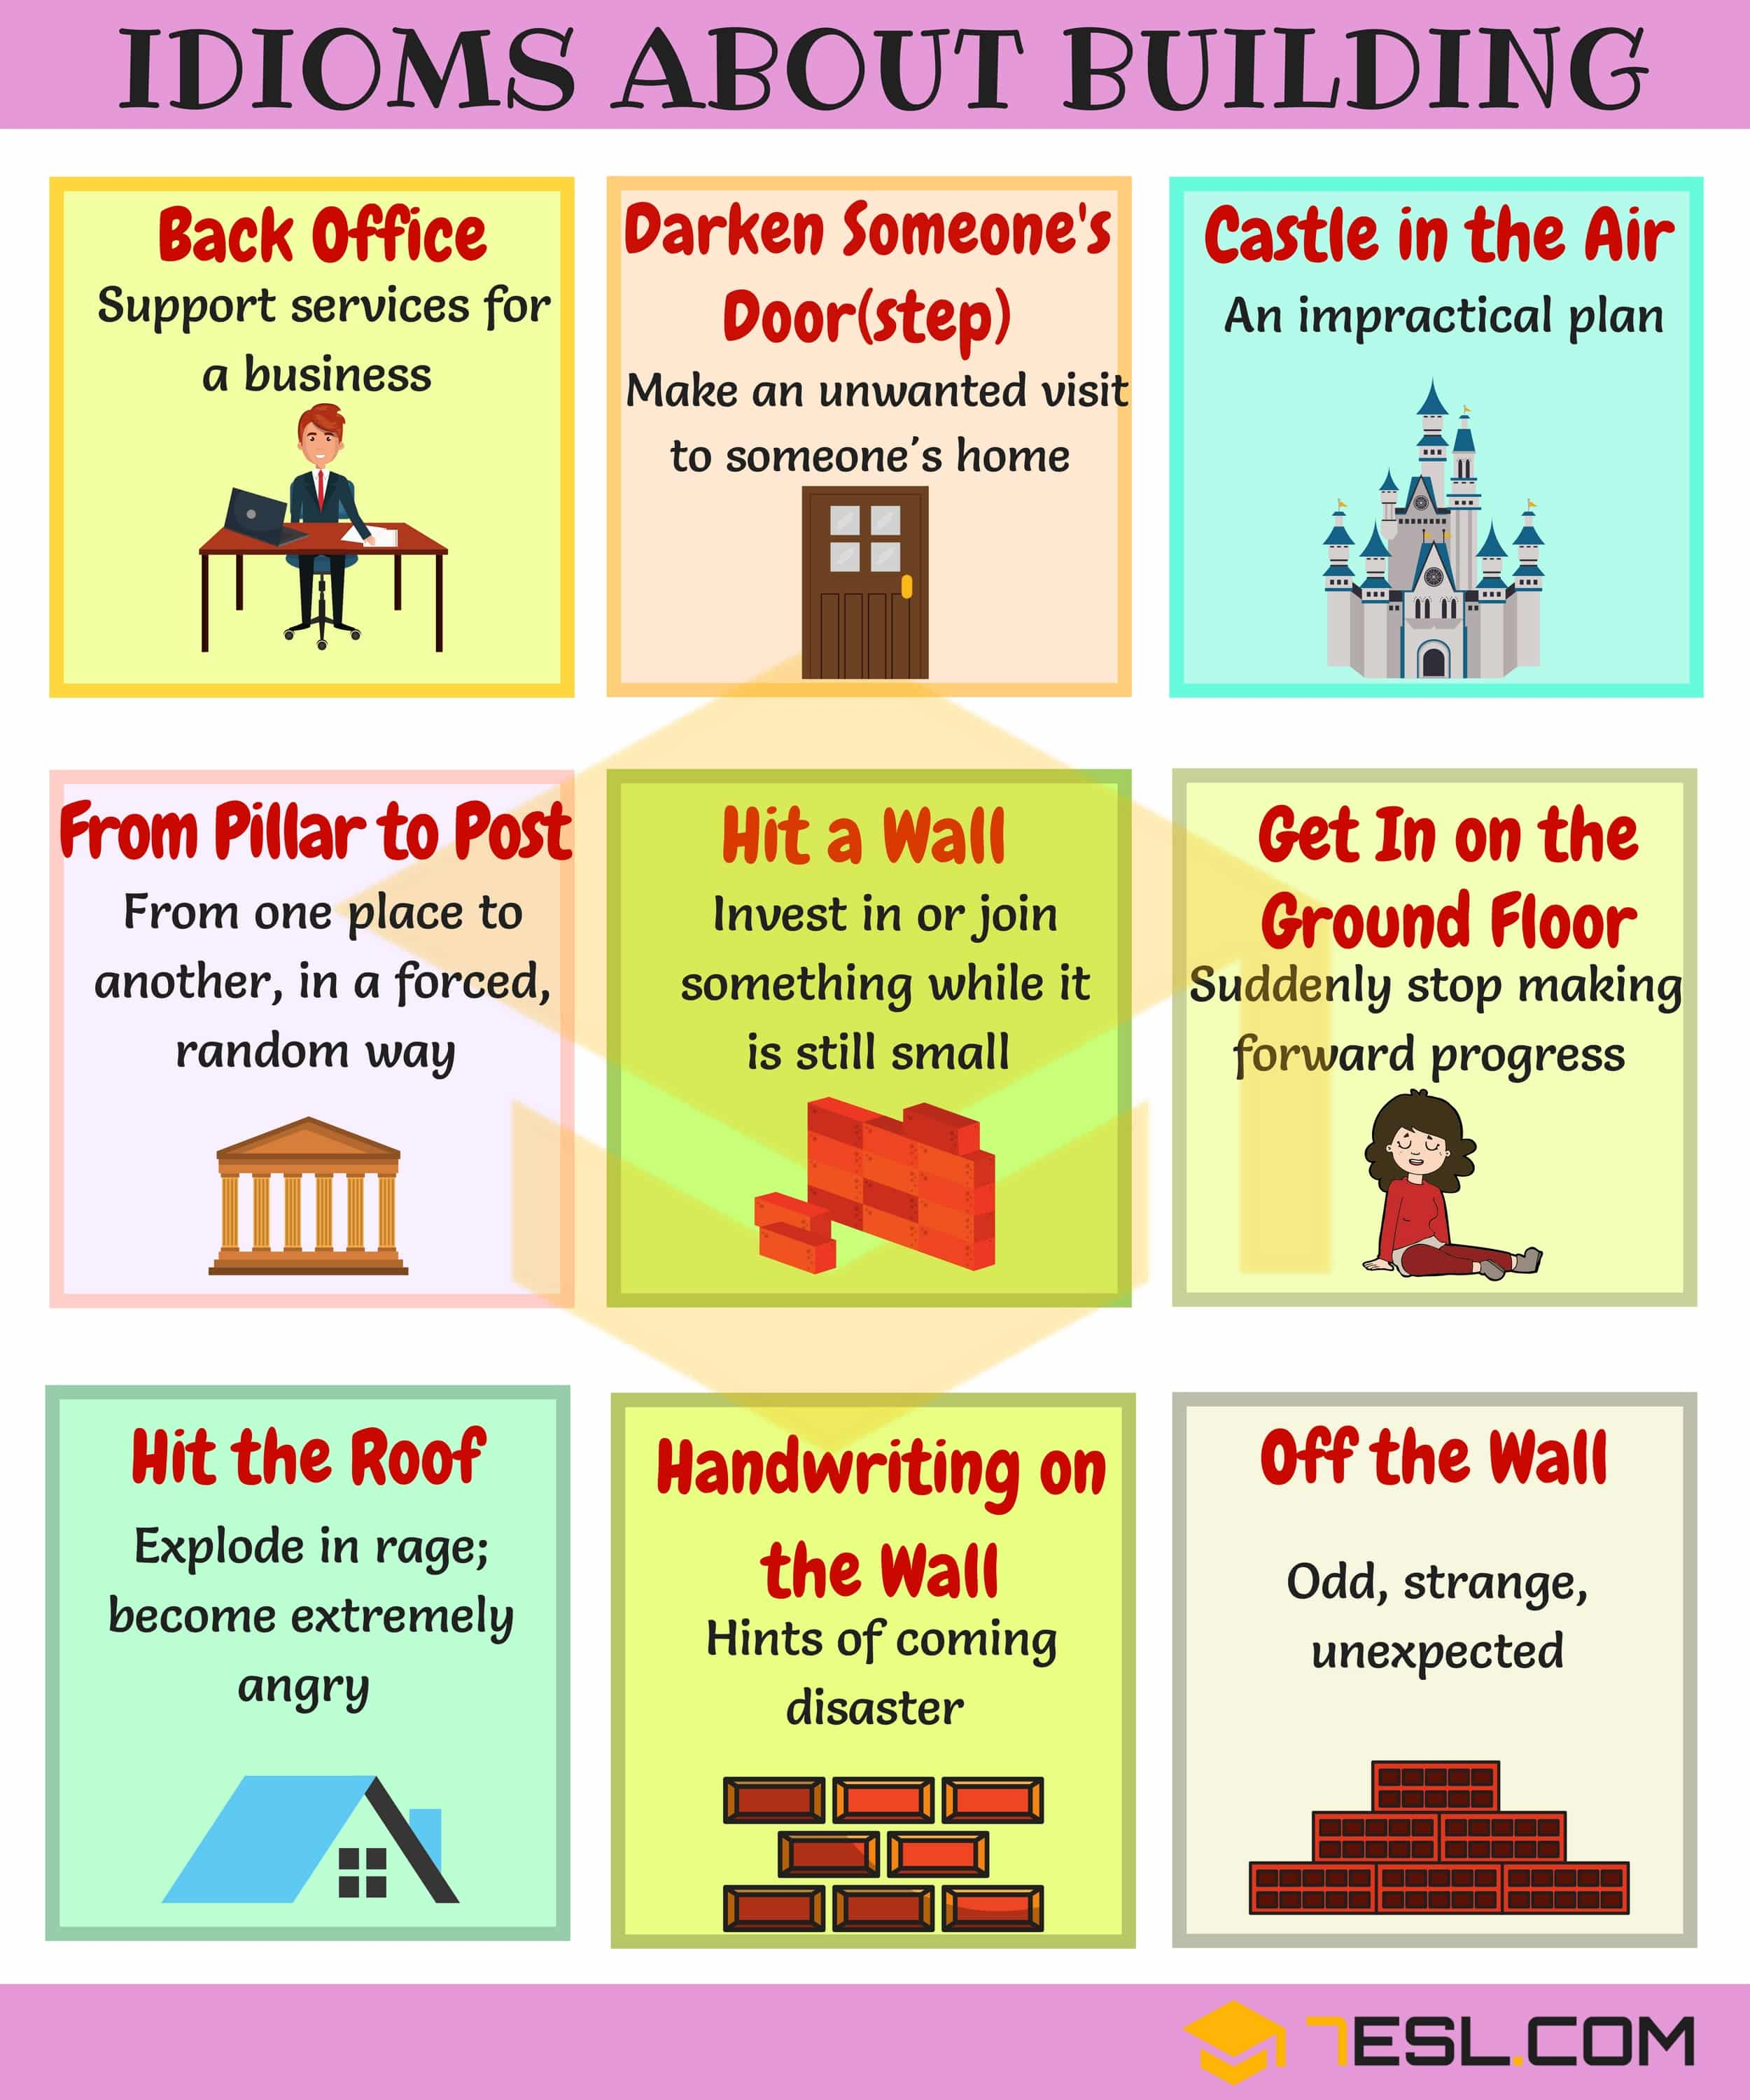 Idioms about Building and Technology